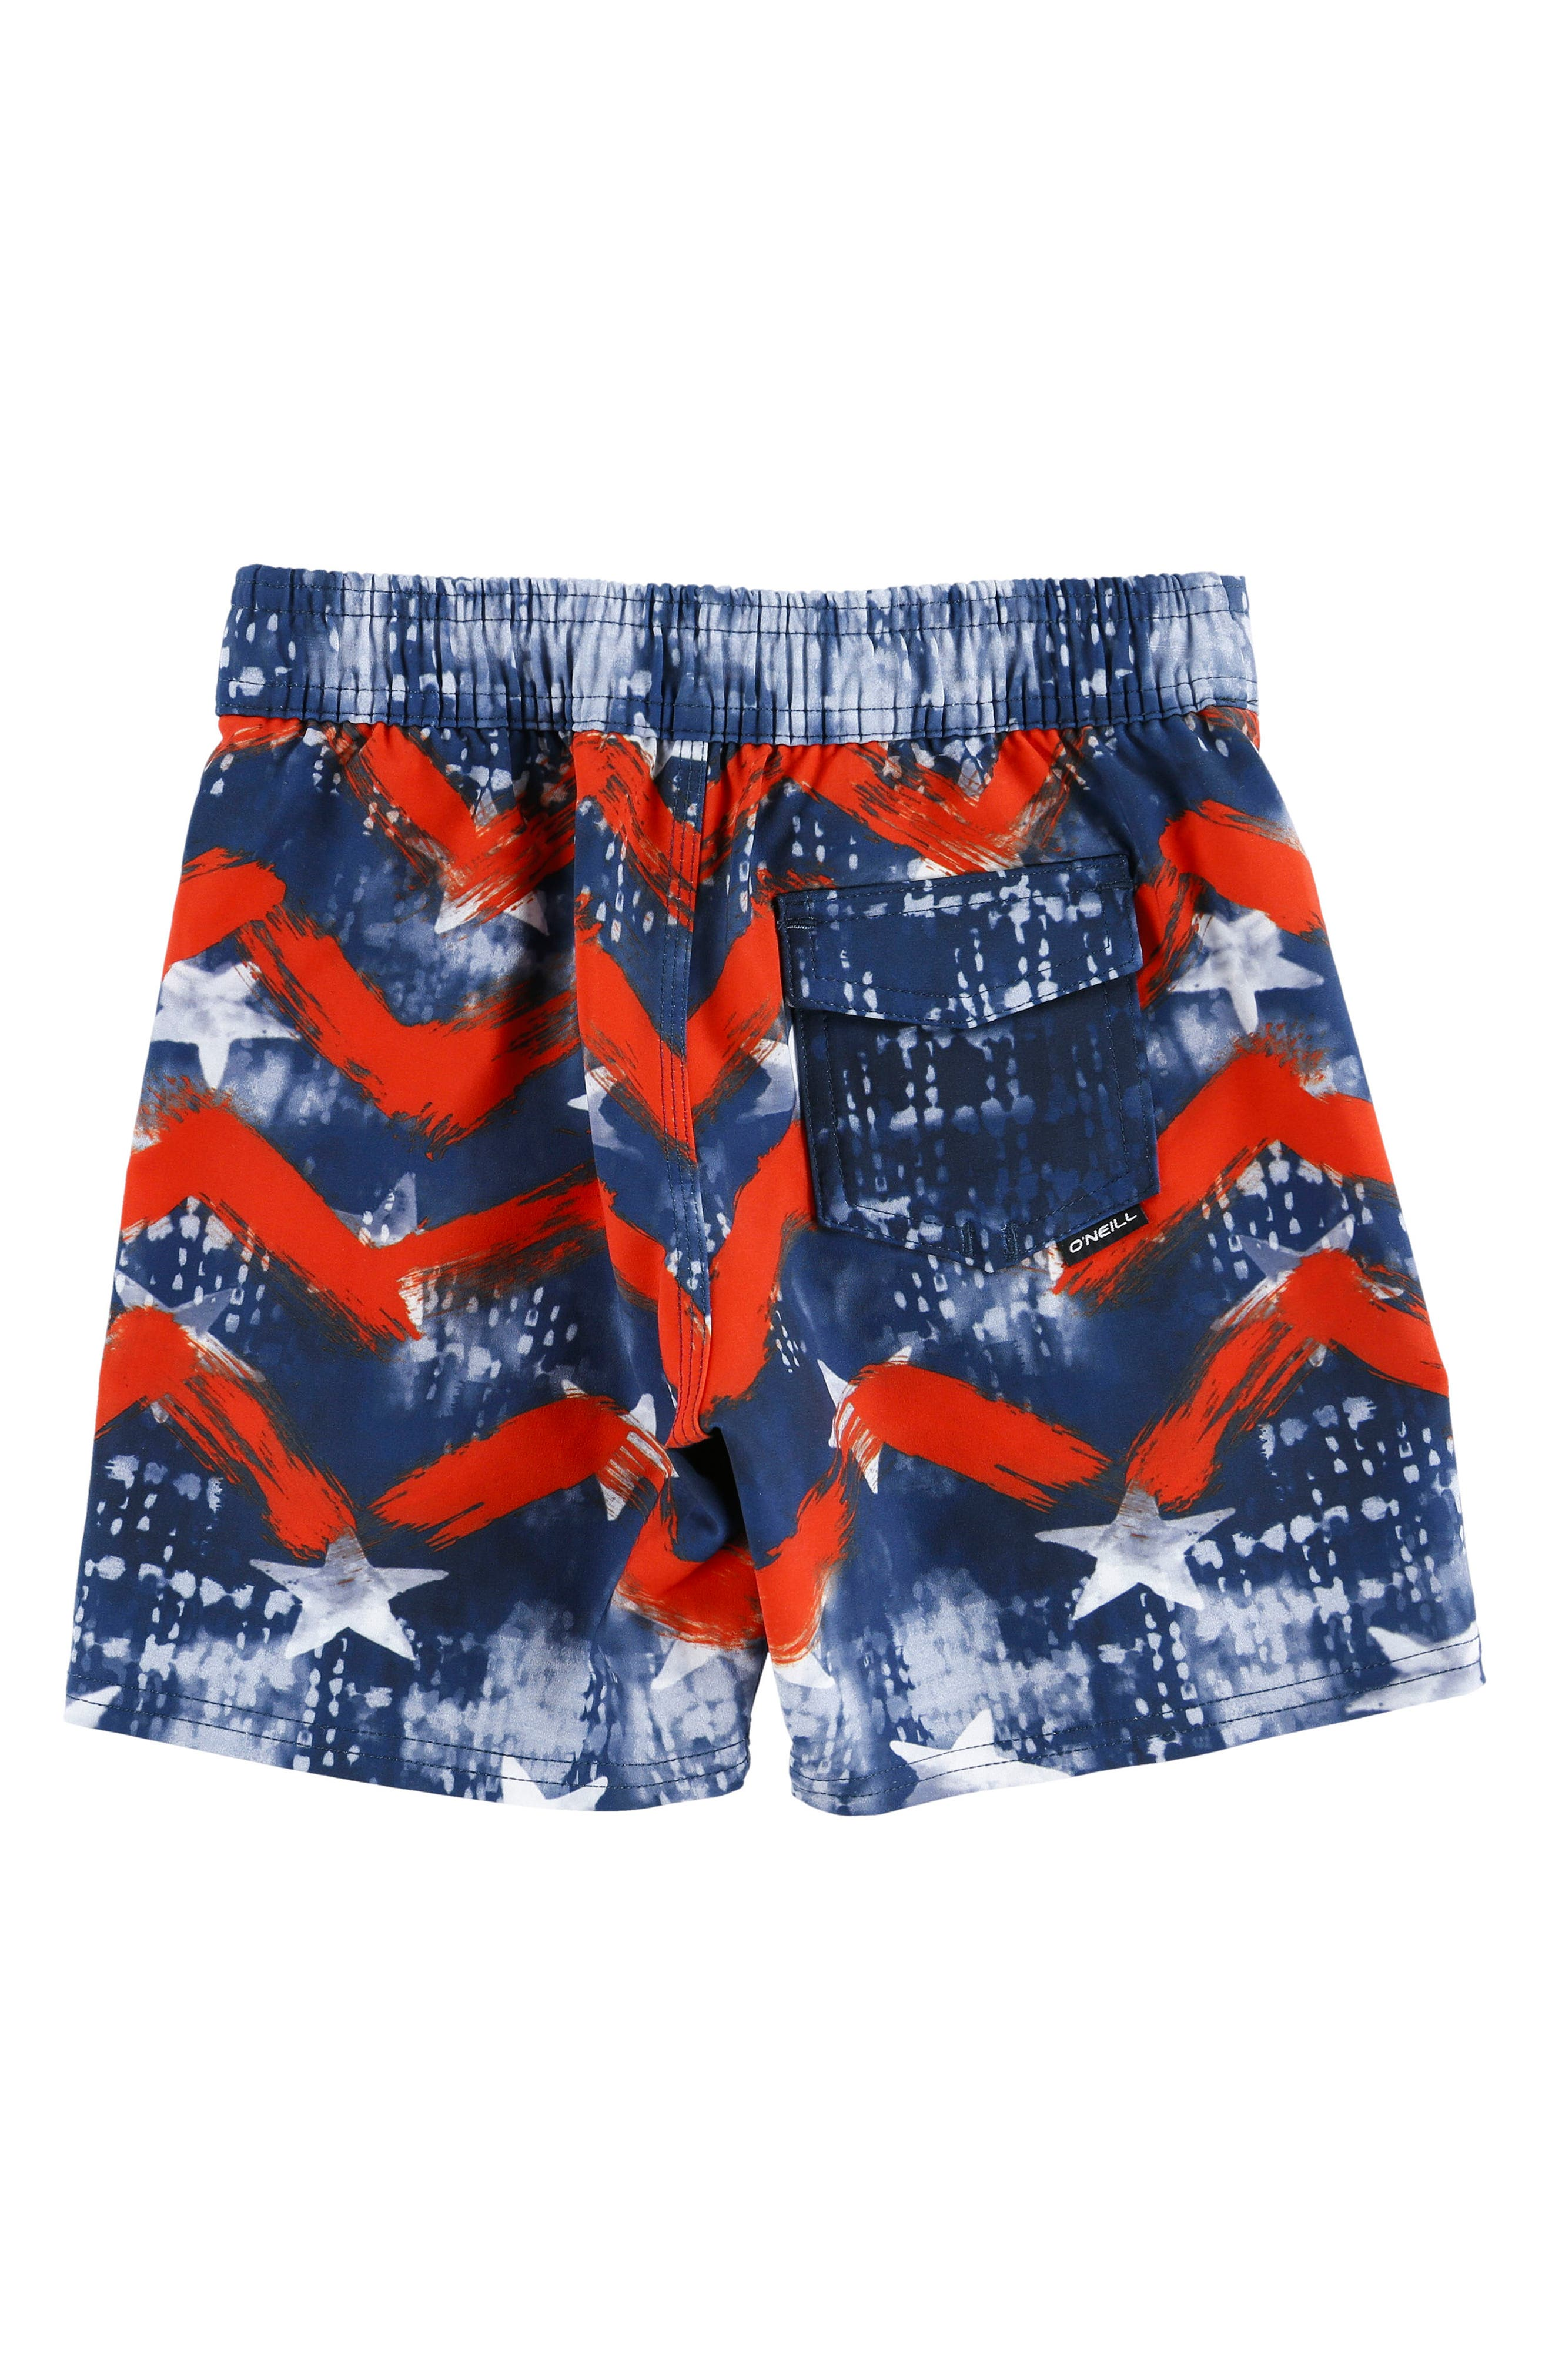 Hyperfreak Independence Board Shorts,                             Alternate thumbnail 2, color,                             400